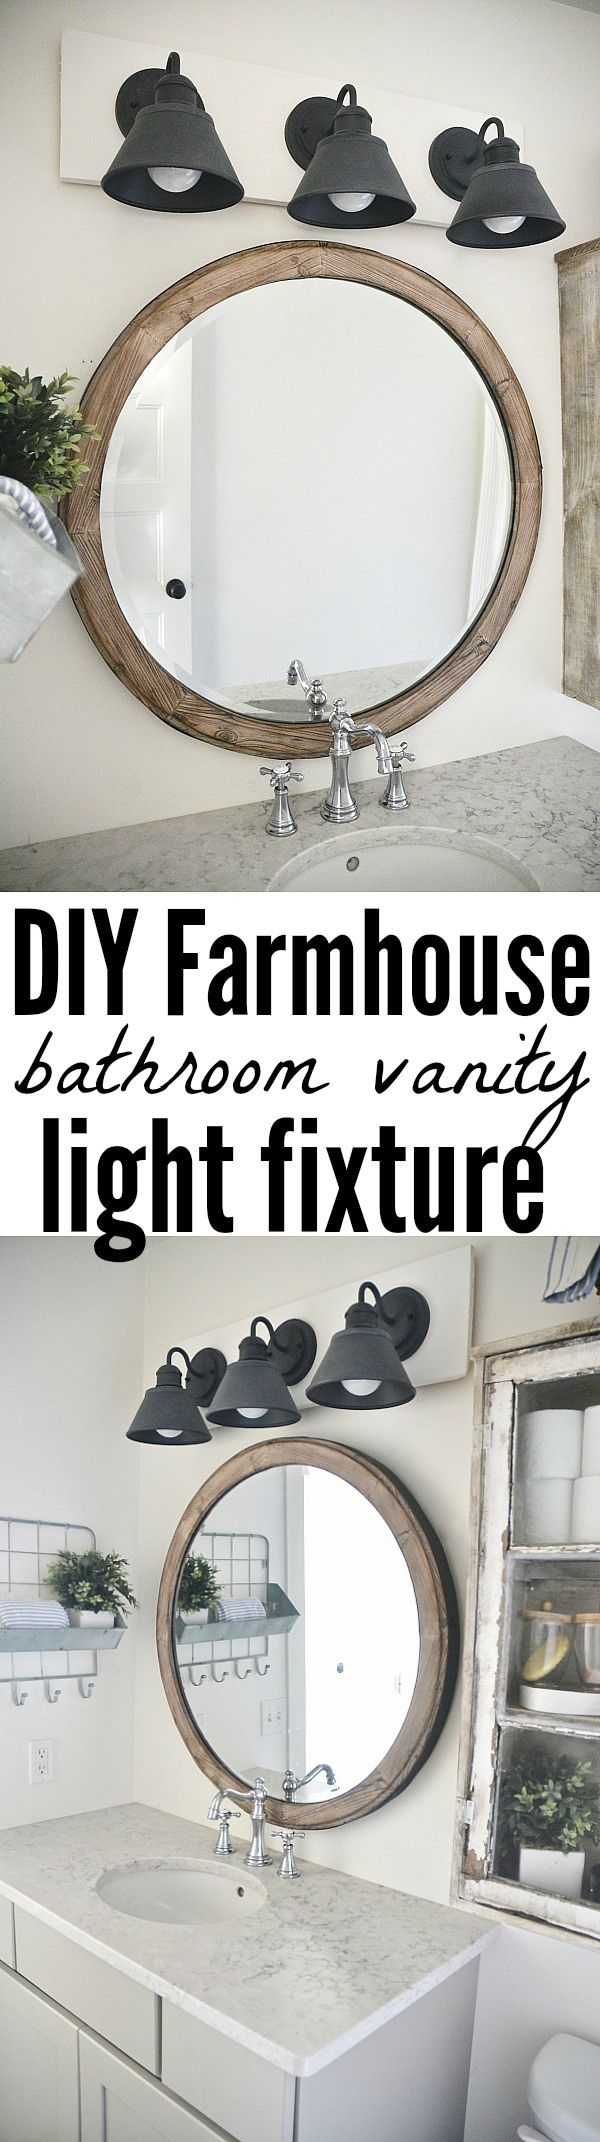 Bathroom vanity and mirror antique ceiling light fixtures bathroom - Best 25 Vanity Lighting Ideas On Pinterest Bathroom Lighting Inspiration Vanity Light Bulbs And Bathroom Lighting Fixtures